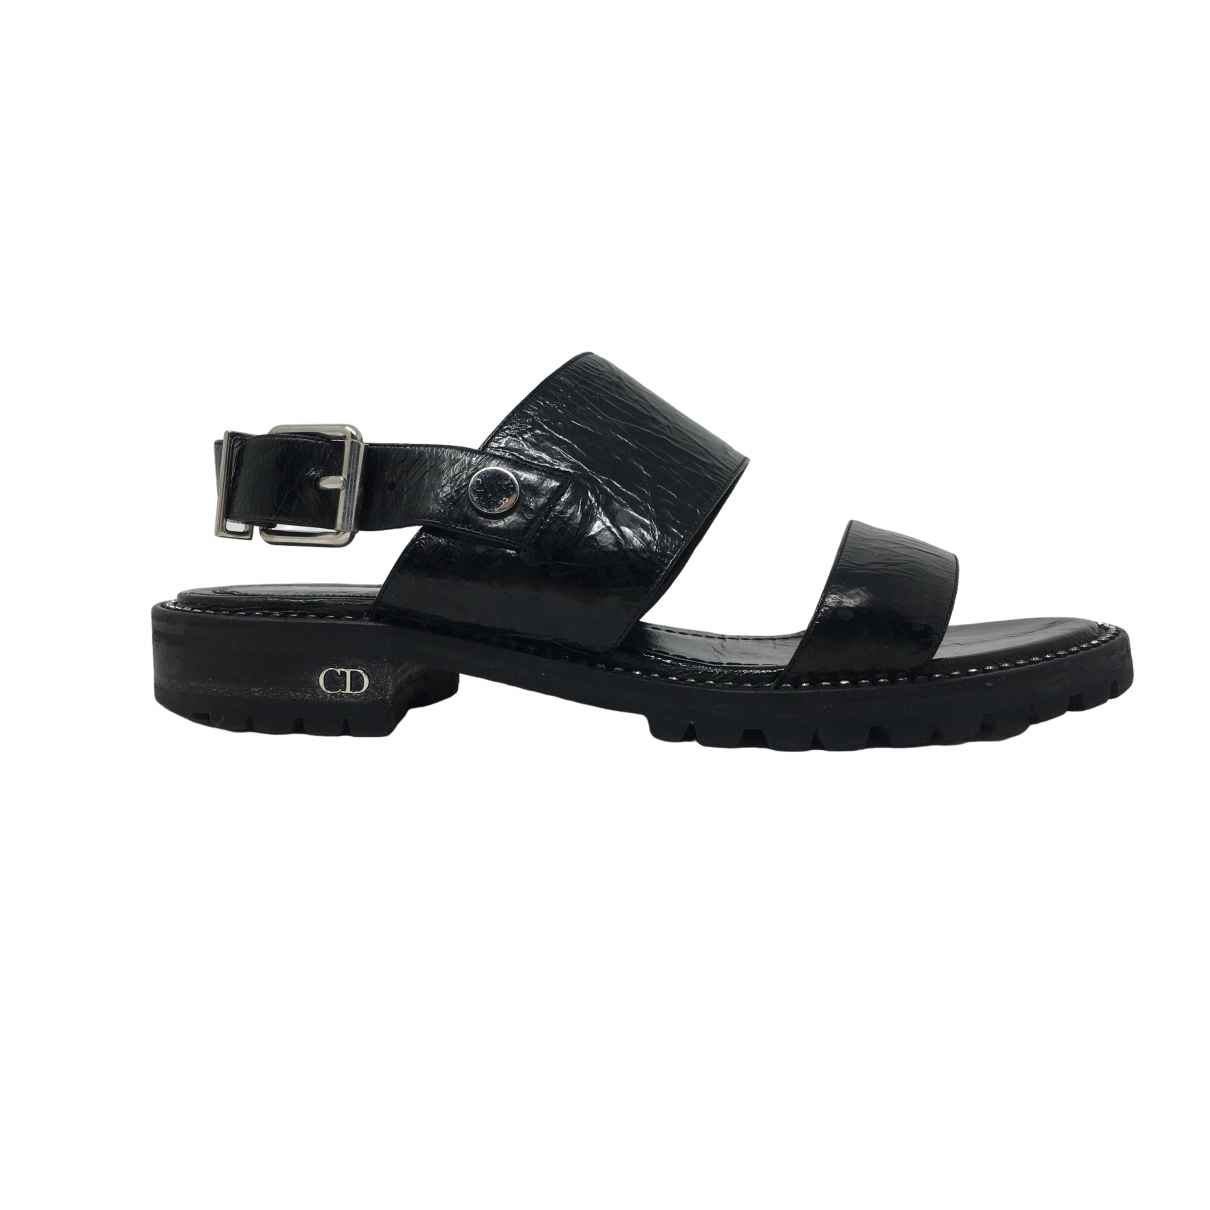 Dior \N Black Patent leather Sandals for Women 38.5 EU